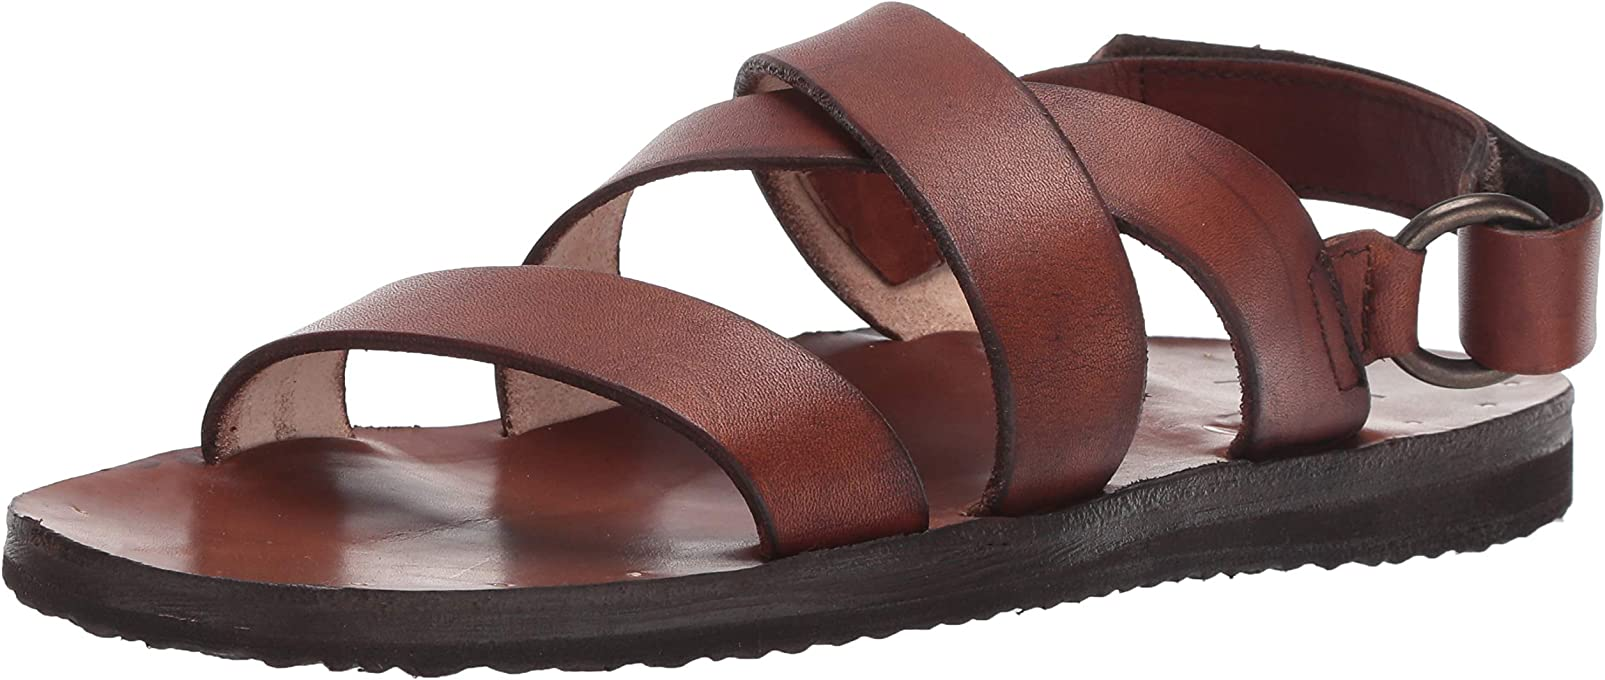 FRYE Men's Cape Cross Strap Sandal